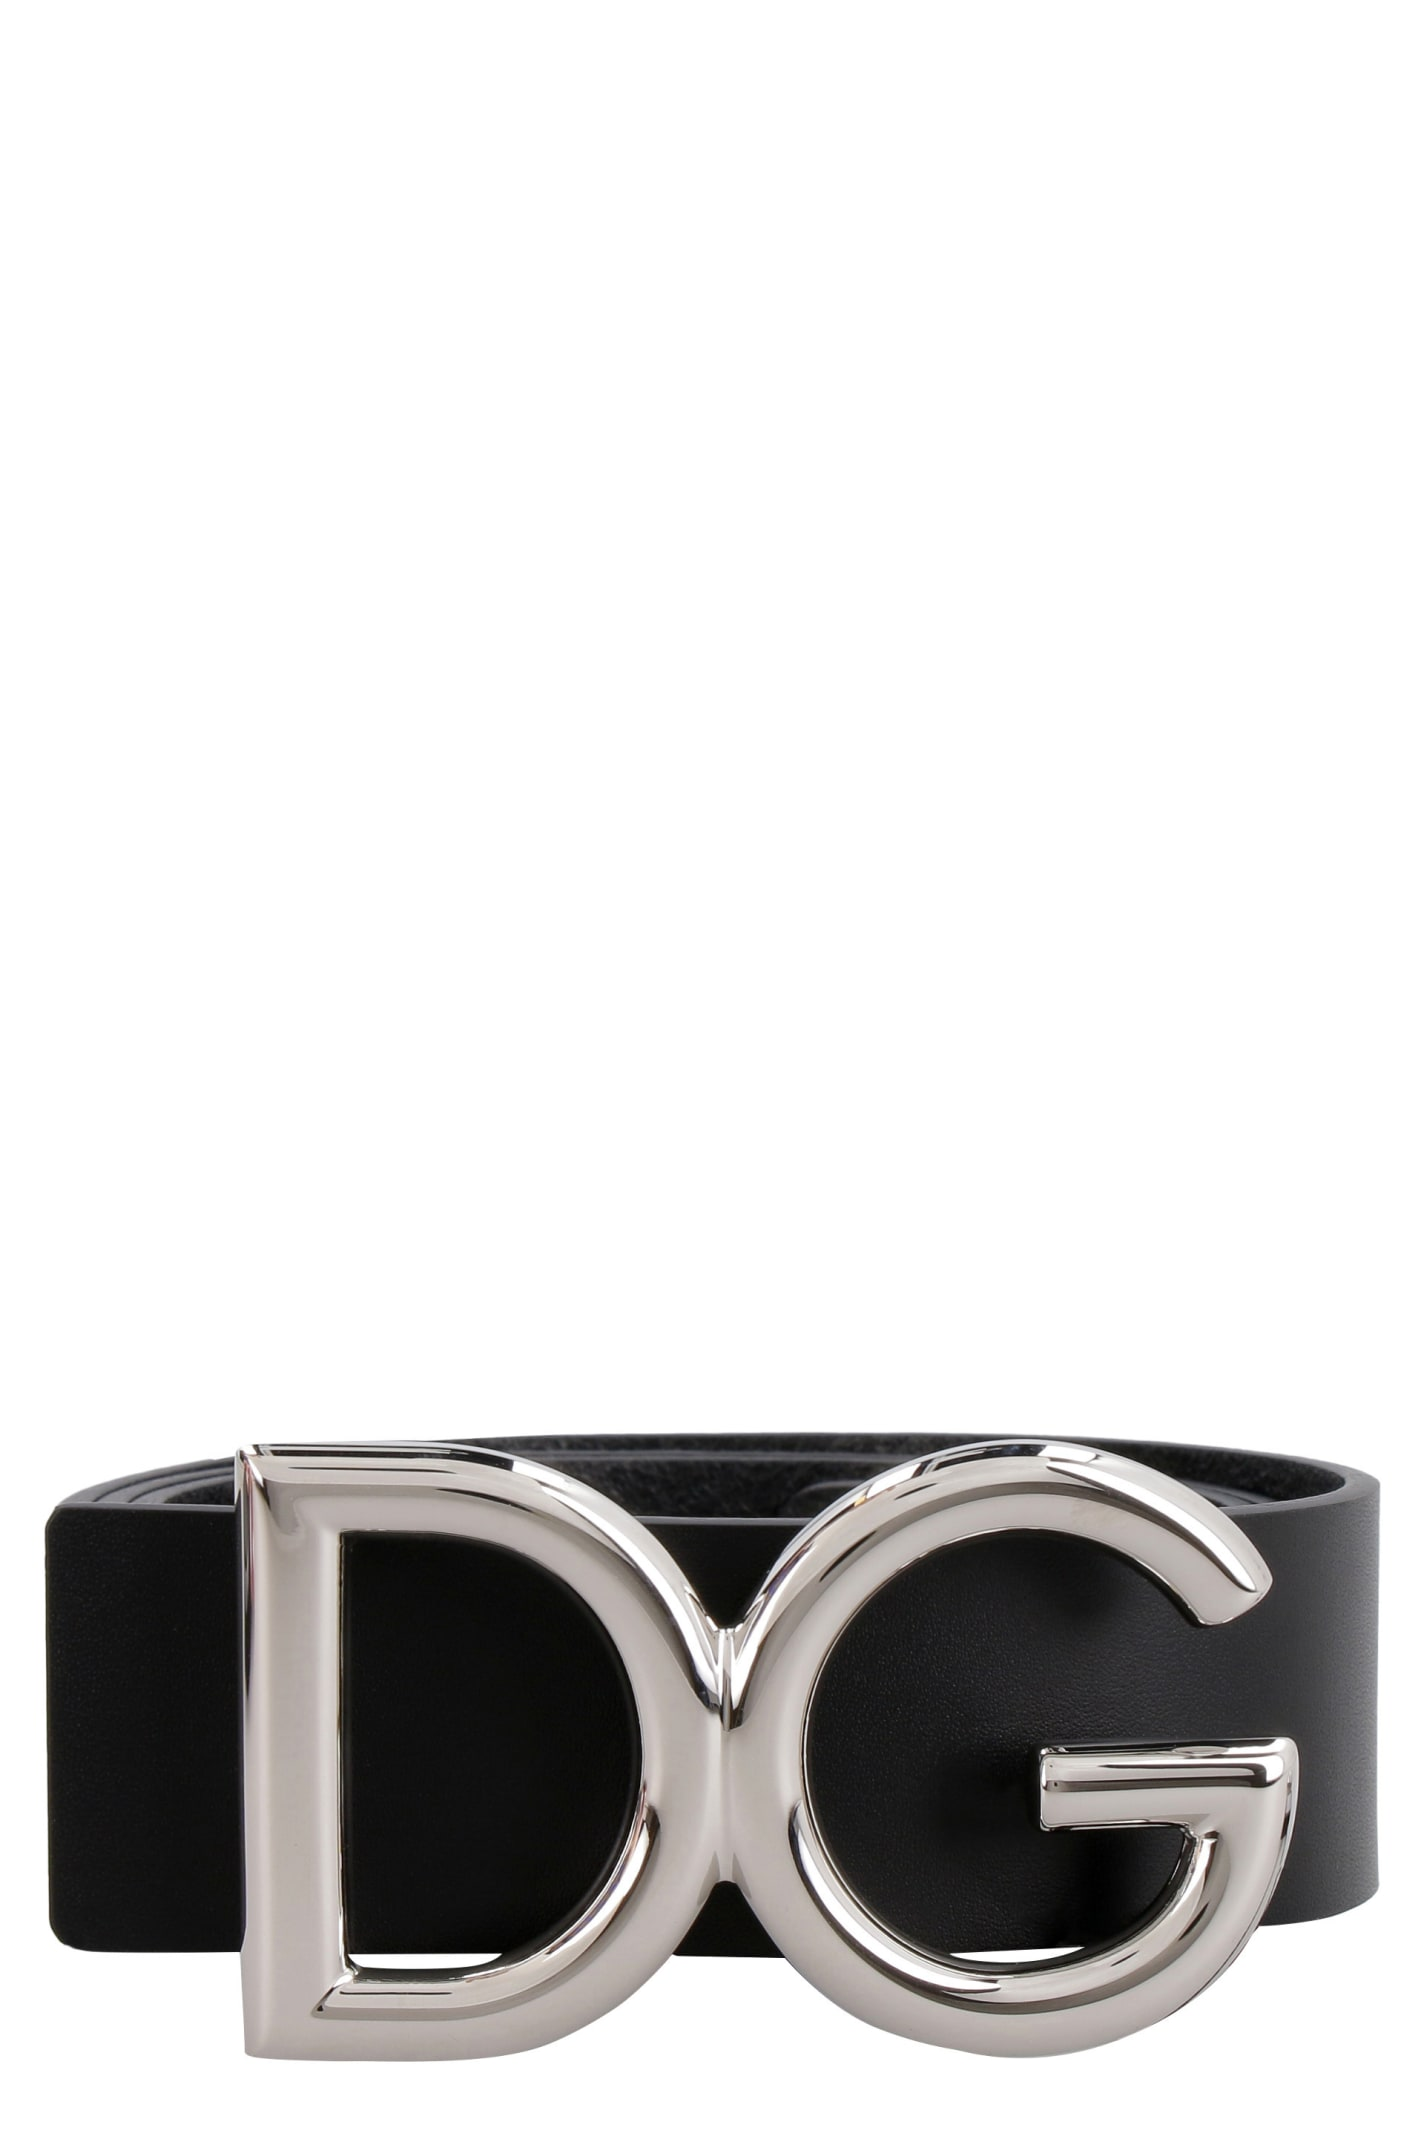 DOLCE & GABBANA LEATHER BELT WITH BUCKLE